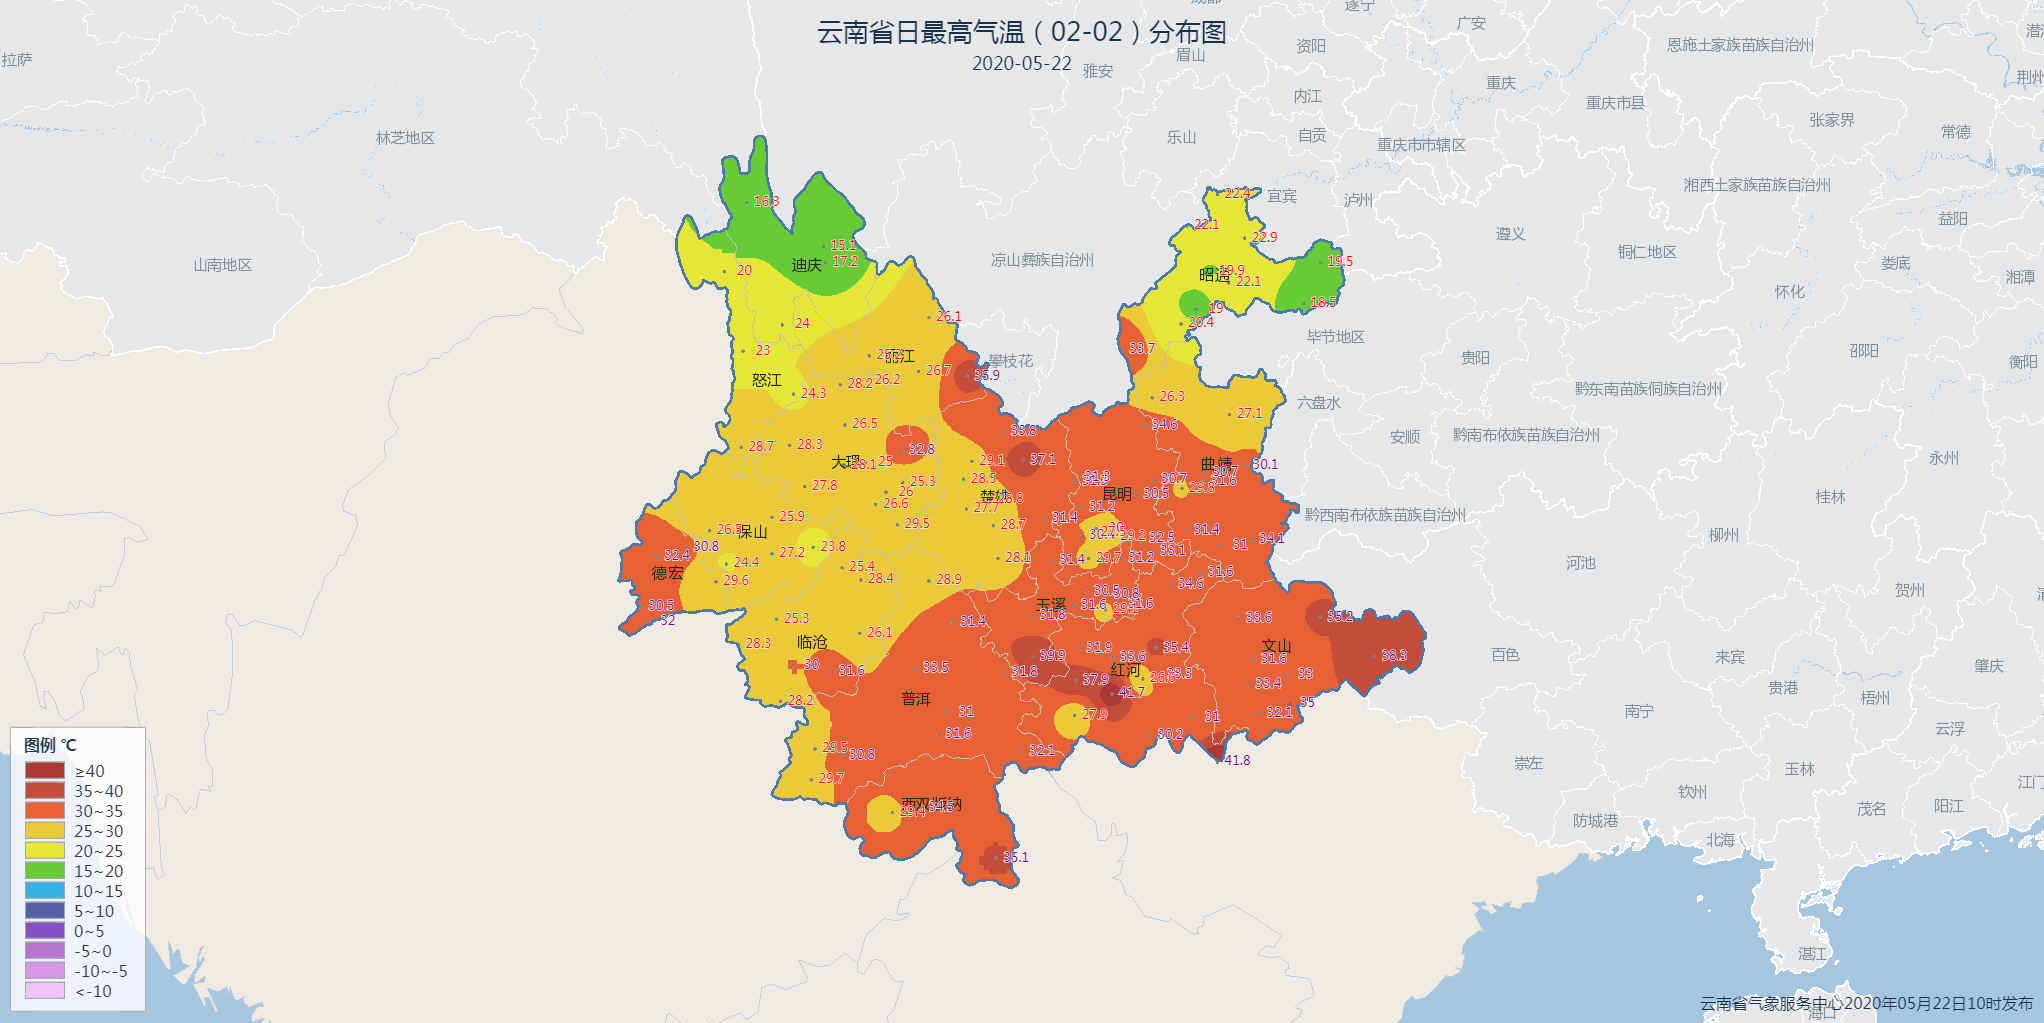 http://i.weather.com.cn/images/yunnan/tqyw/2020/05/22/1590114291866006021.png